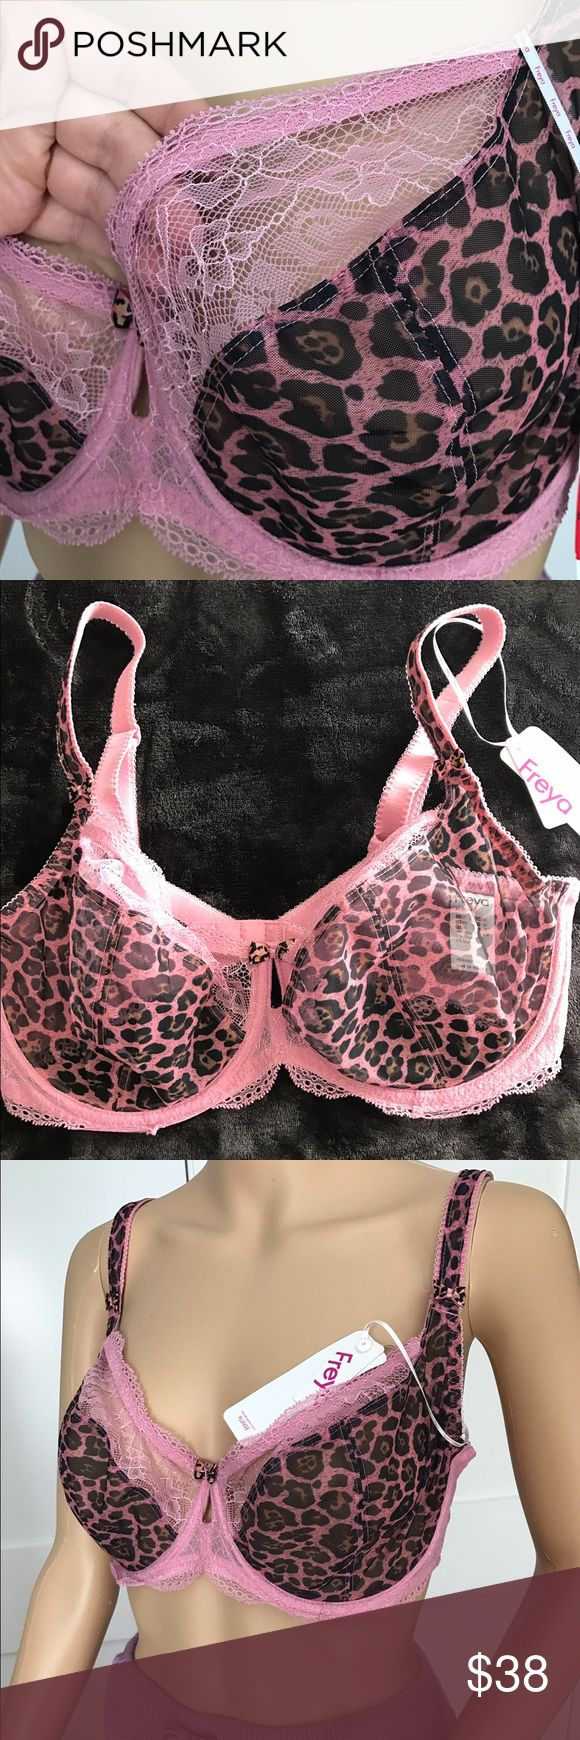 Freya Pink Lace and Leopard like Fabric Bra 34G Gorgeous Freya Bra ✨ combination of transparent leopard like fabric with pink lace ✨very sexy 😘.. New with tags! 🌟cups are not padded! ❤great for Valentine's Day, ladies ❤size 34G Freya Intimates & Sleepwear Bras